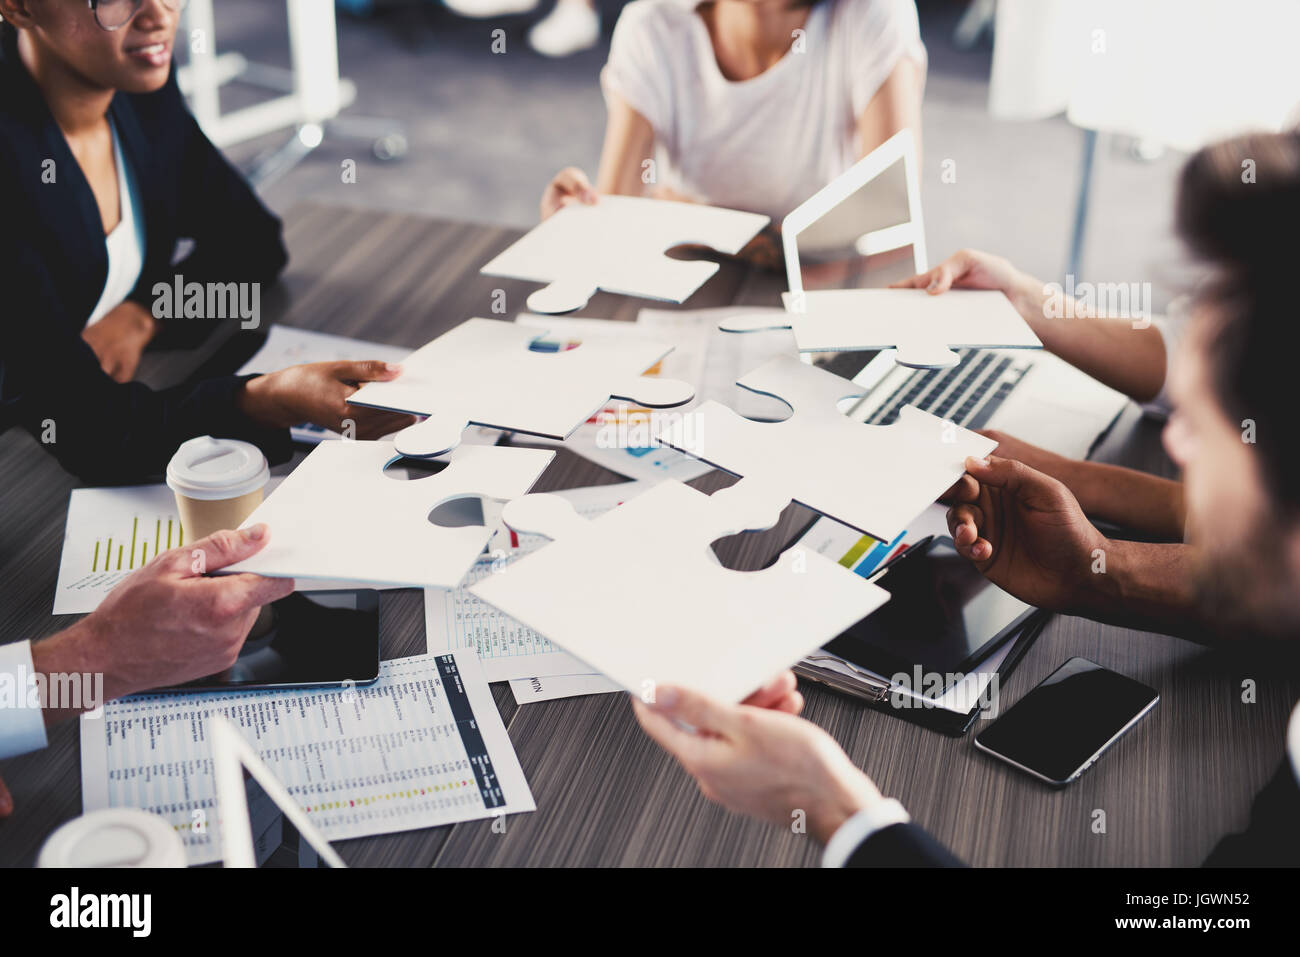 Team of businessmen work together for one goal. Concept of unity and partnership - Stock Image